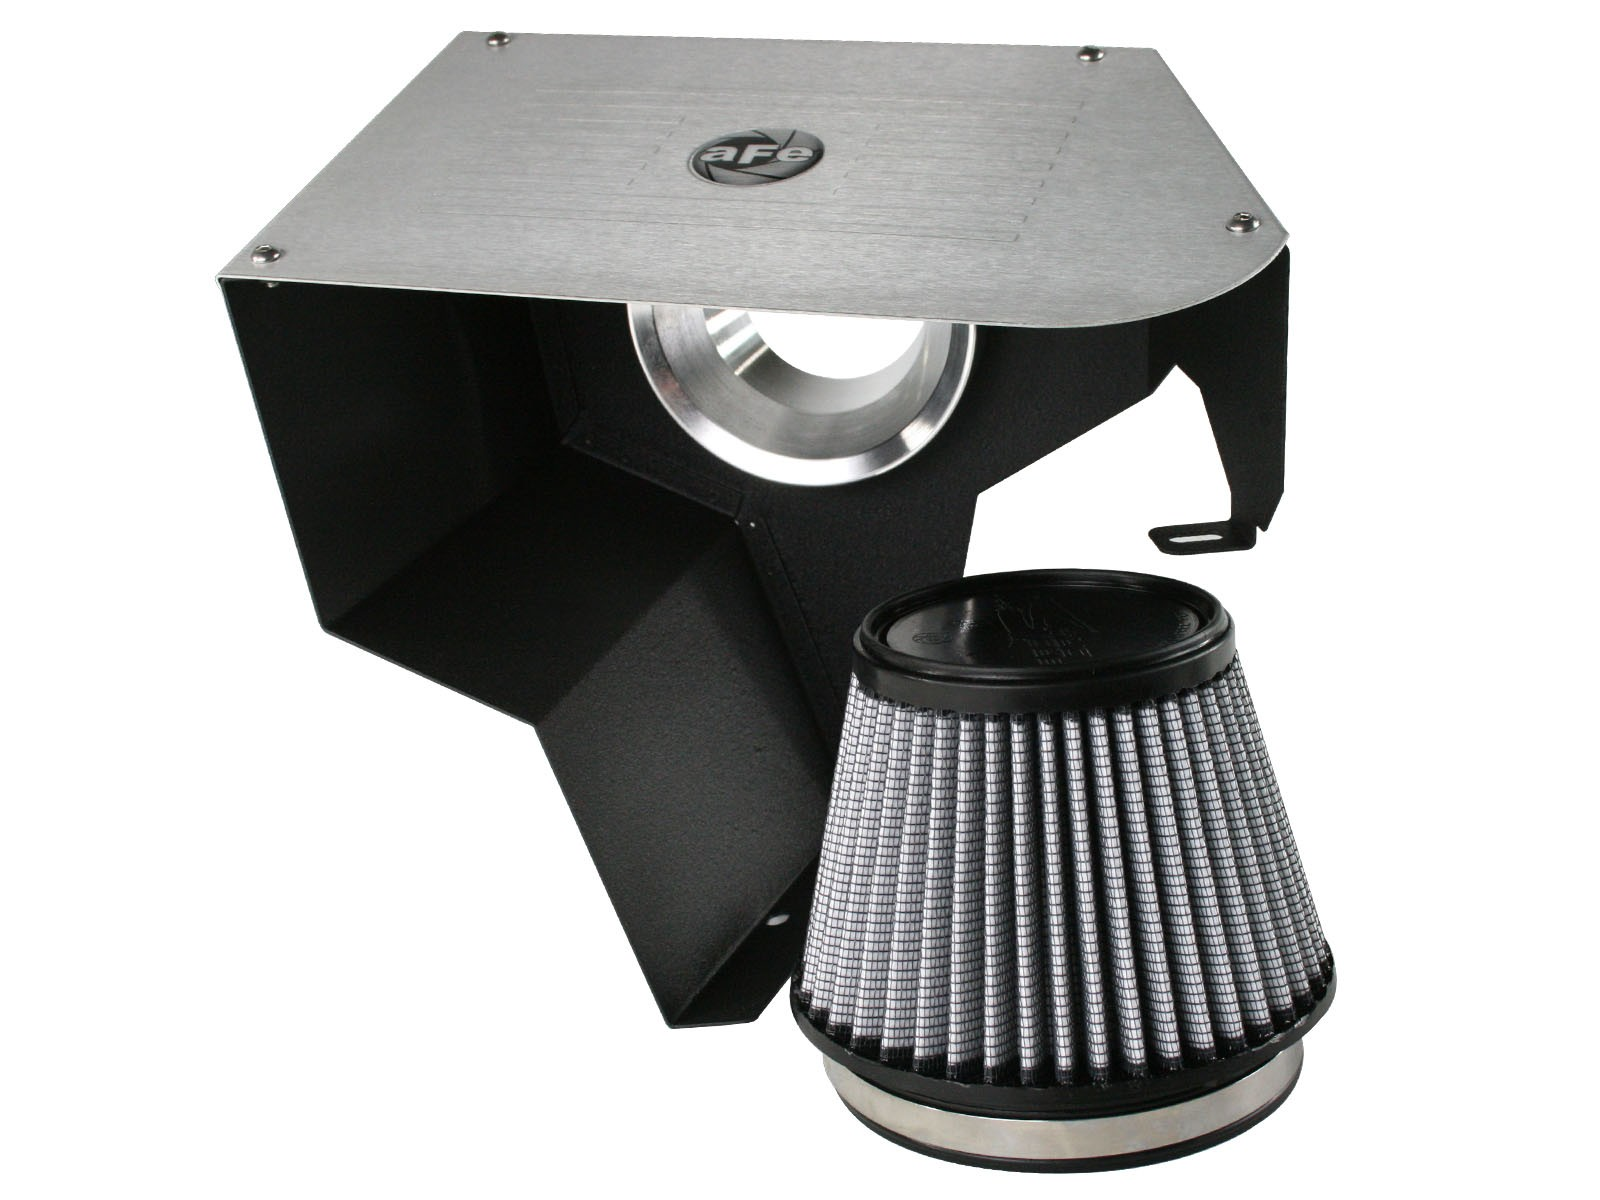 aFe POWER 51-10651 Magnum FORCE Stage-1 Pro DRY S Cold Air Intake System